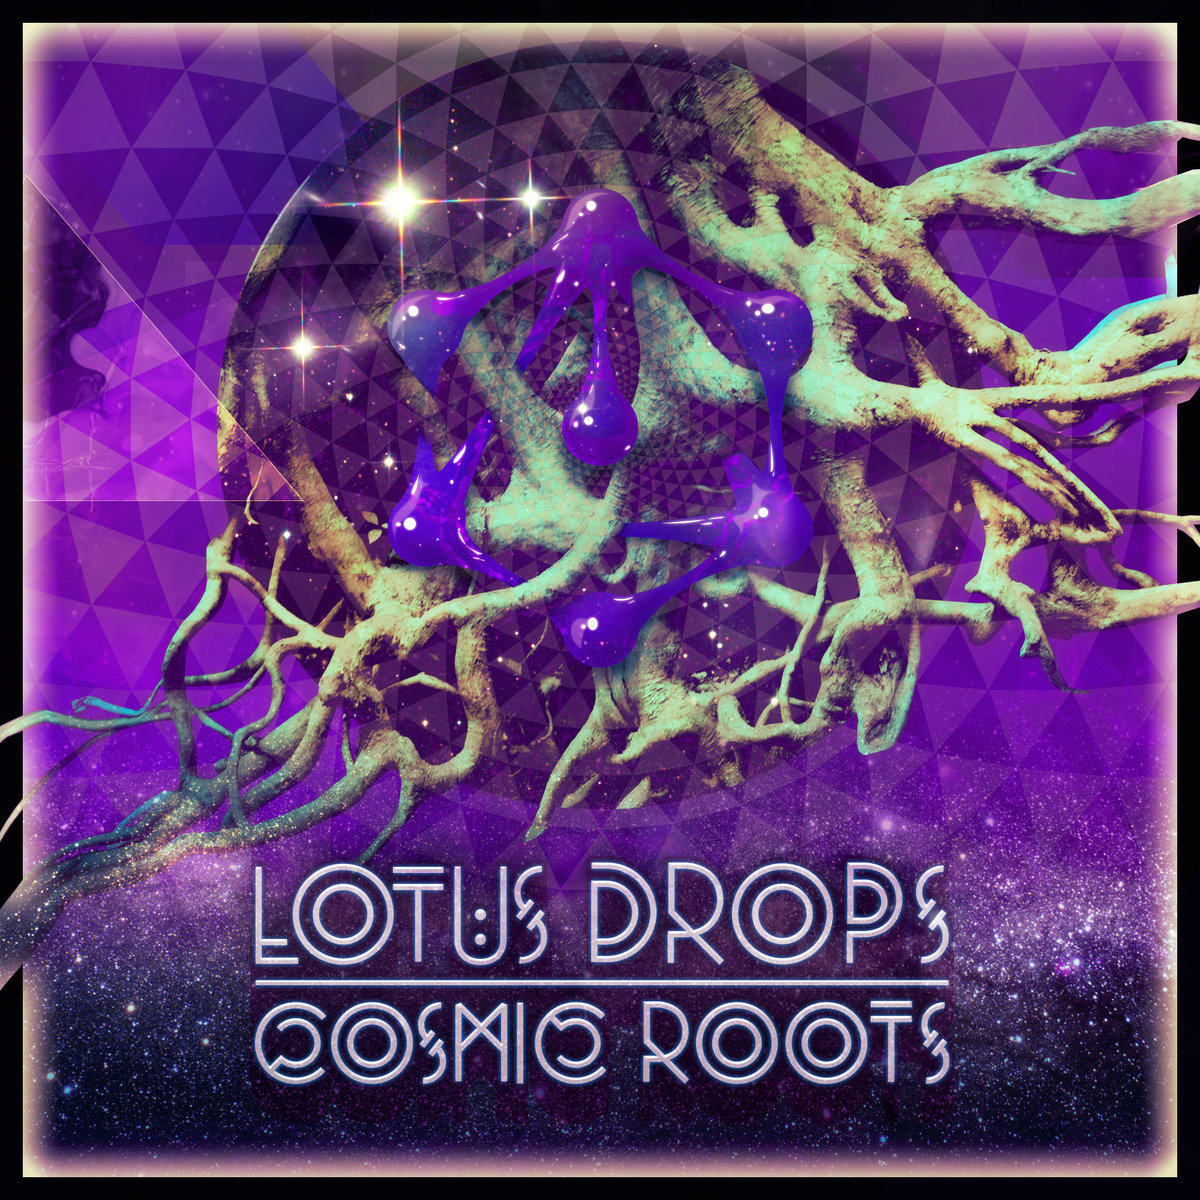 Lotus Drops - Eyes' @ 'Cosmic Roots' album (electronic, dubstep)